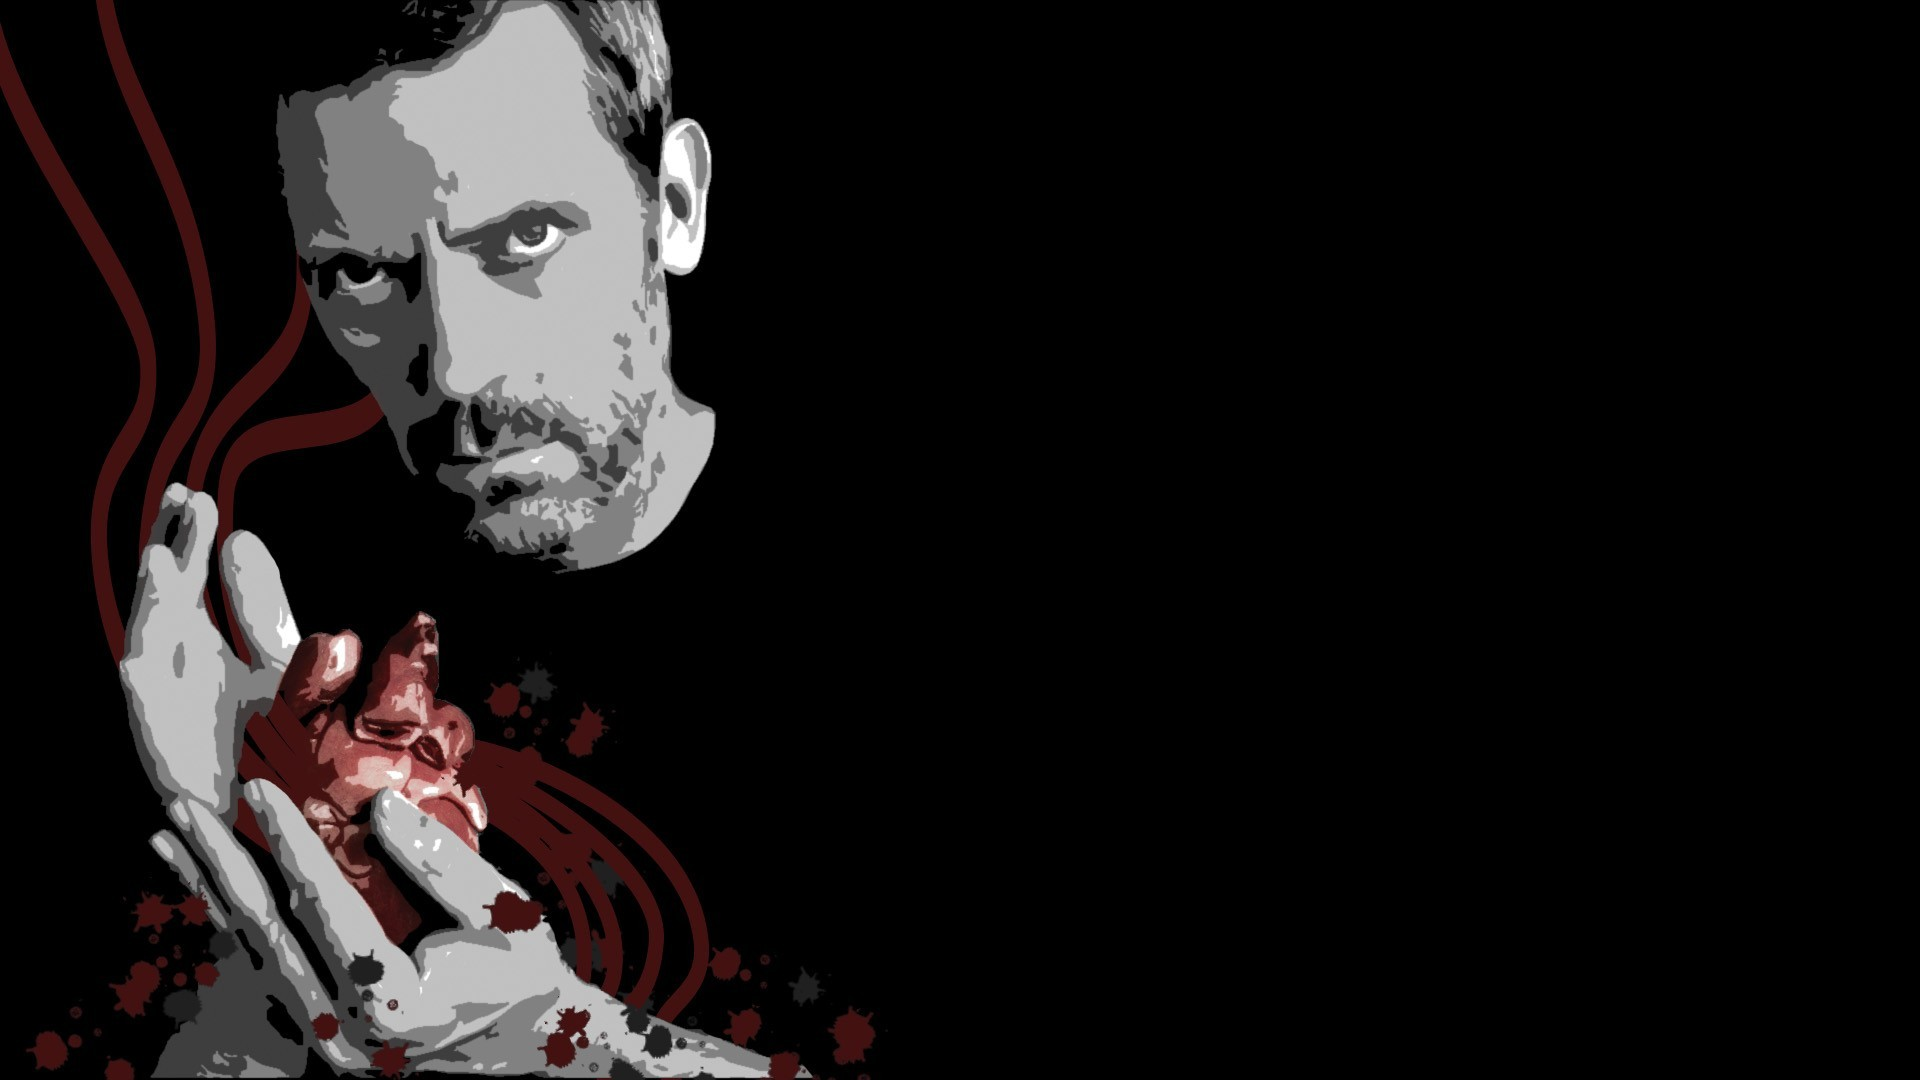 Dr House wallpaper 5082 1920x1080